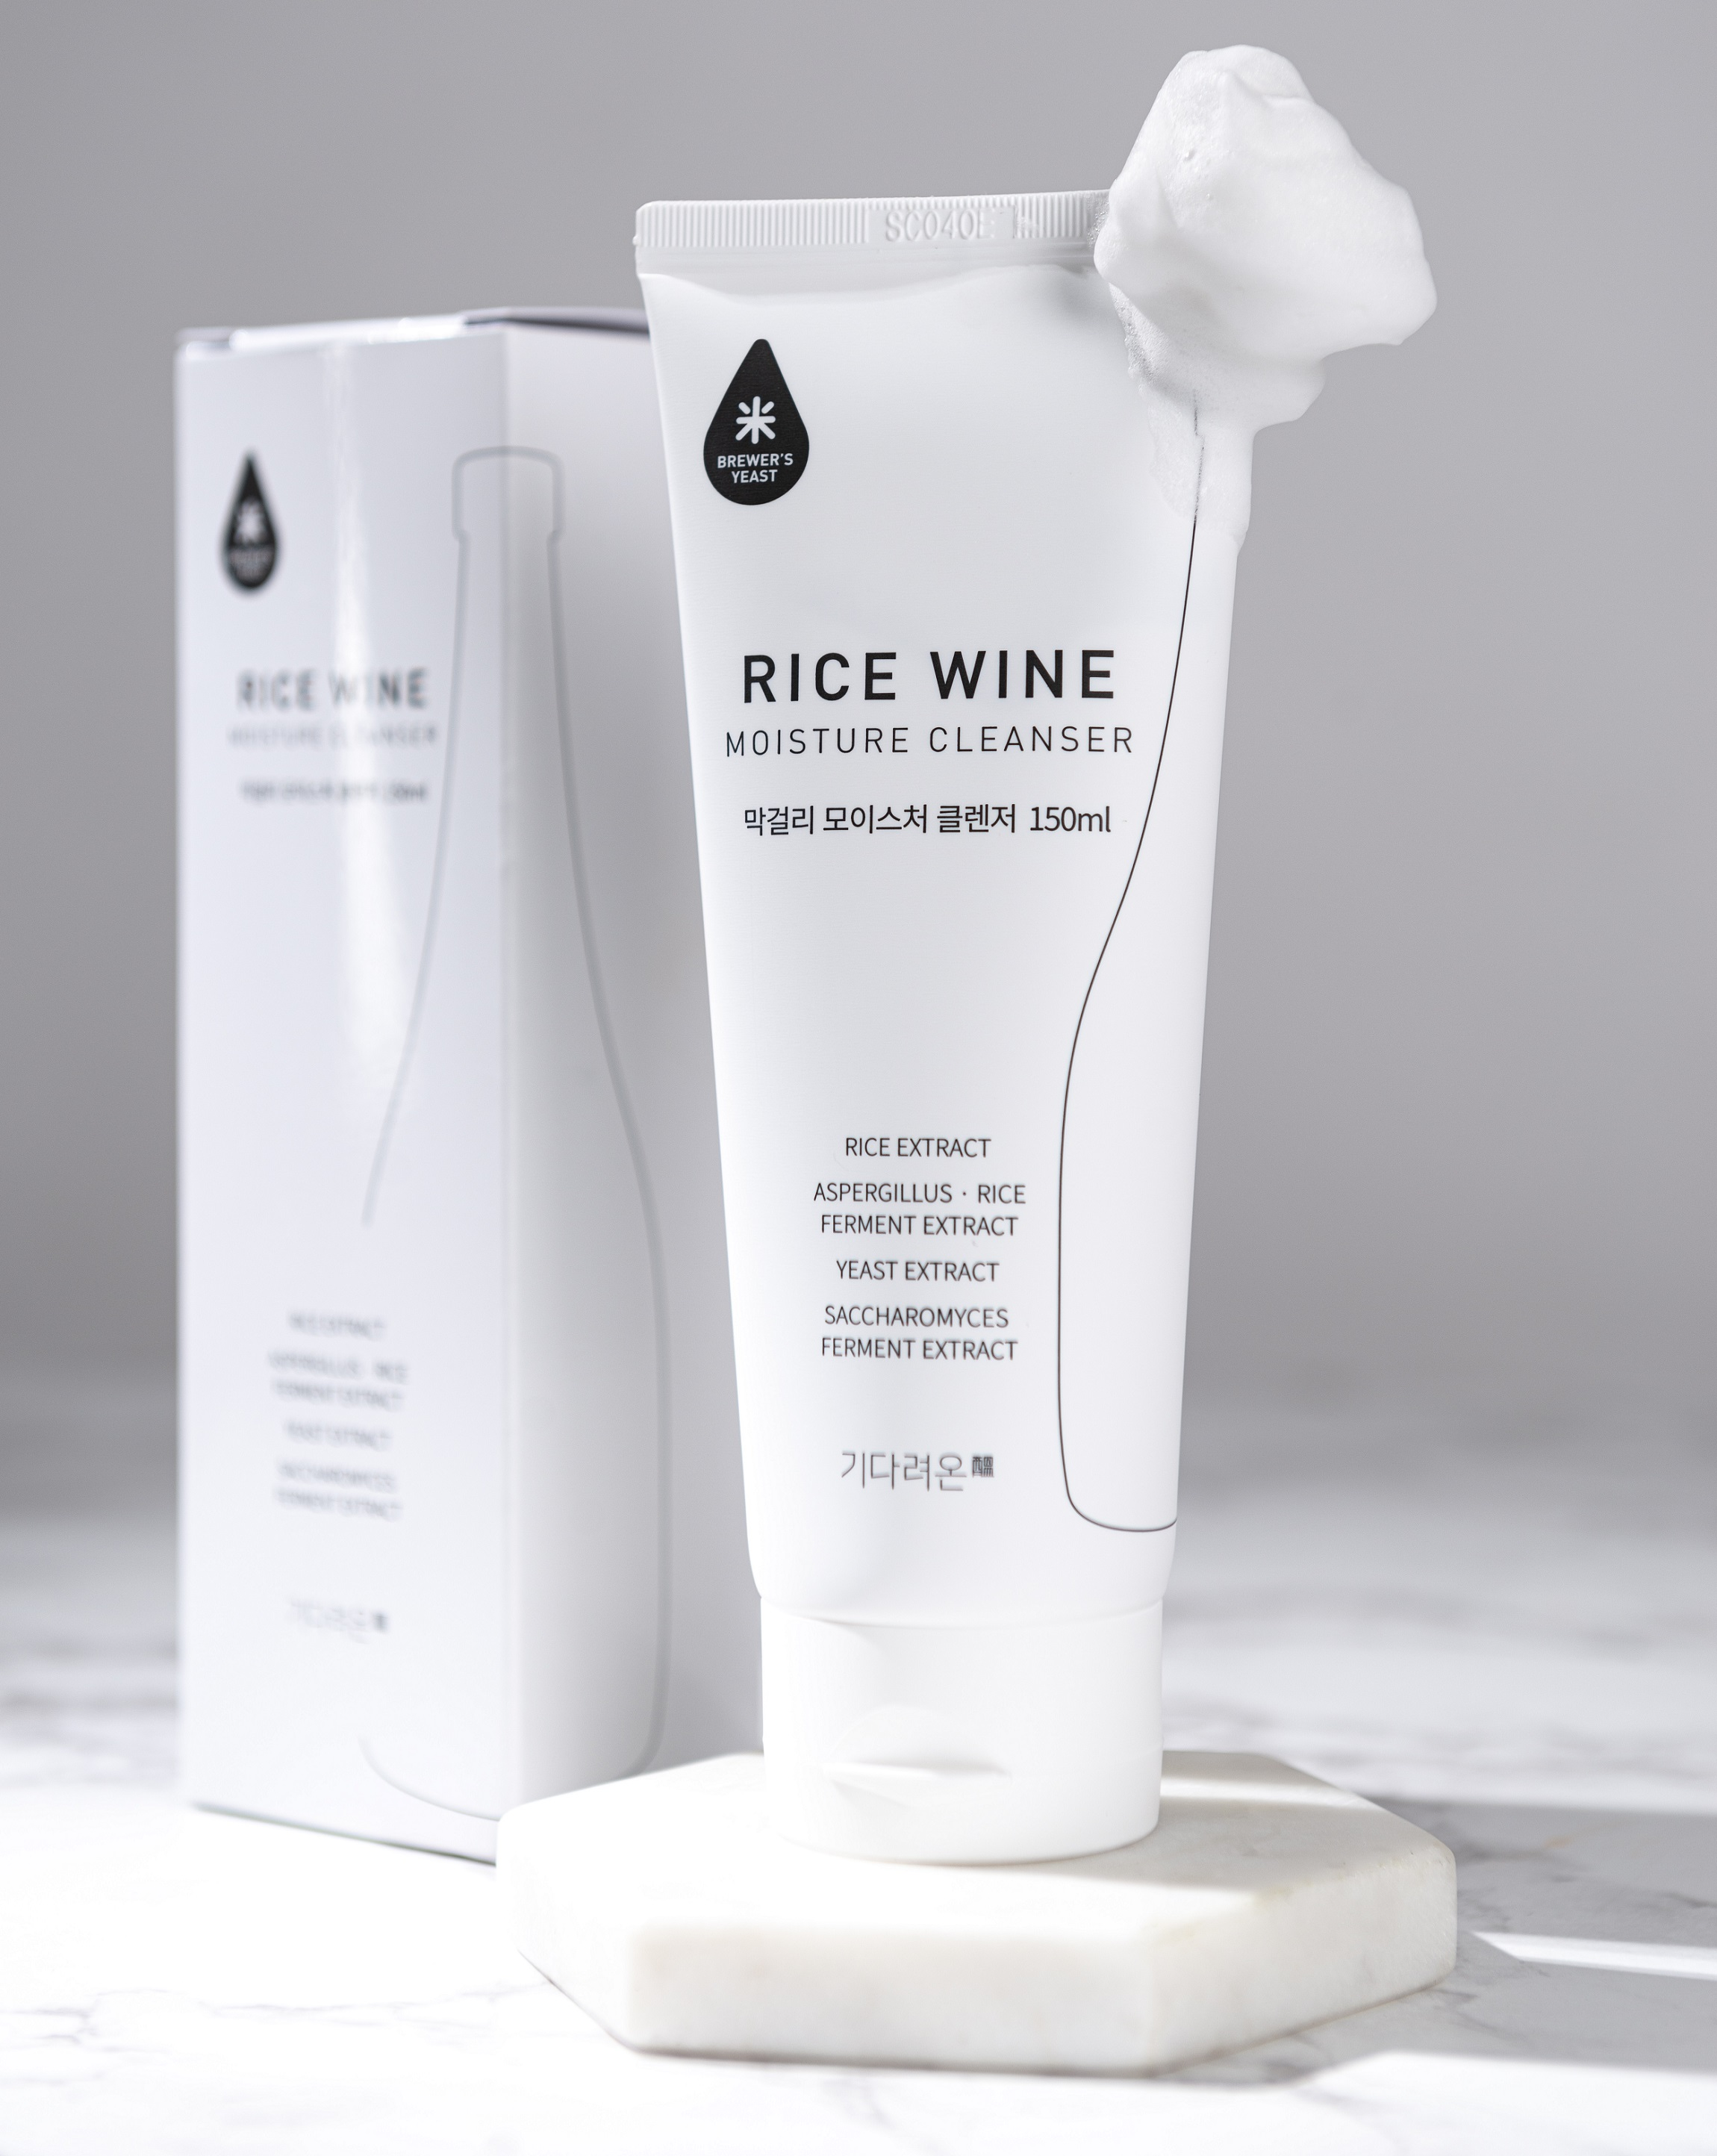 RICEWINE Moisture Cleanser_facial cleanser products made in South Korea